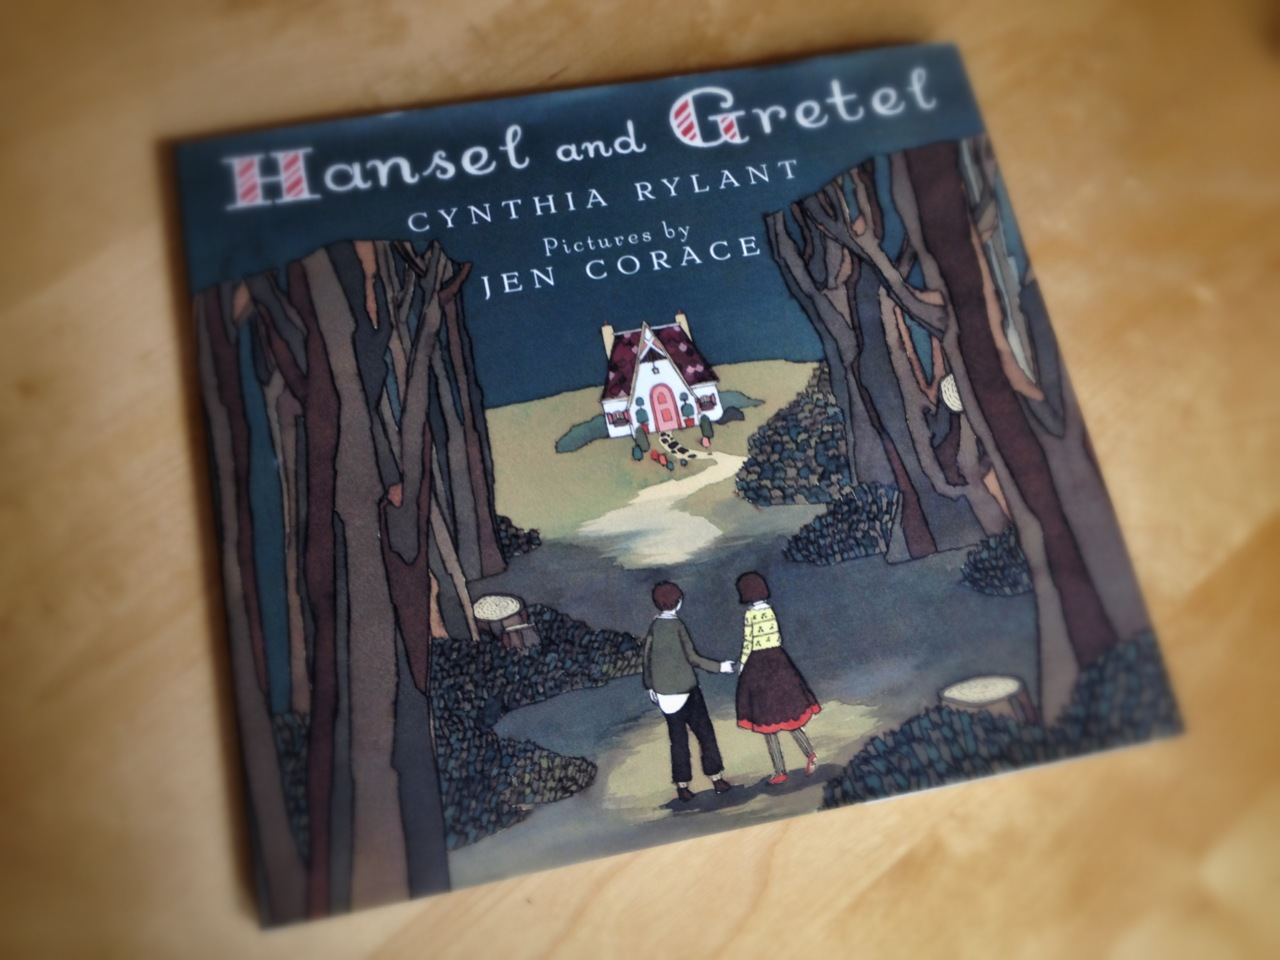 Today's Illustrator Crush. Jen Corace.    When I was at Disney Publishing, Disney Hyperion published a beautiful, Cynthia Rylant authored, Jen Corace illustrated edition of Hansel and Gretel. Ever since, I've been a Corace fan!   I love this cover art.